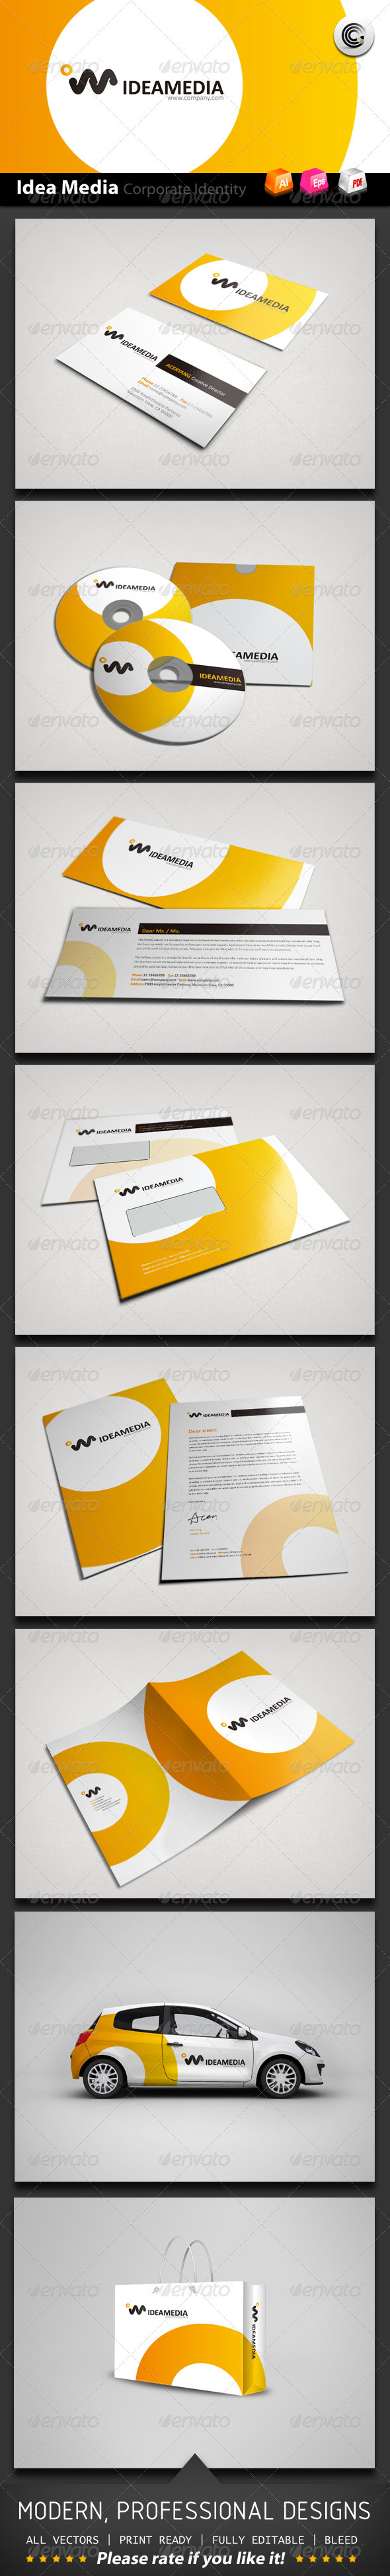 Idea Media Corporate Identity - Stationery Print Templates